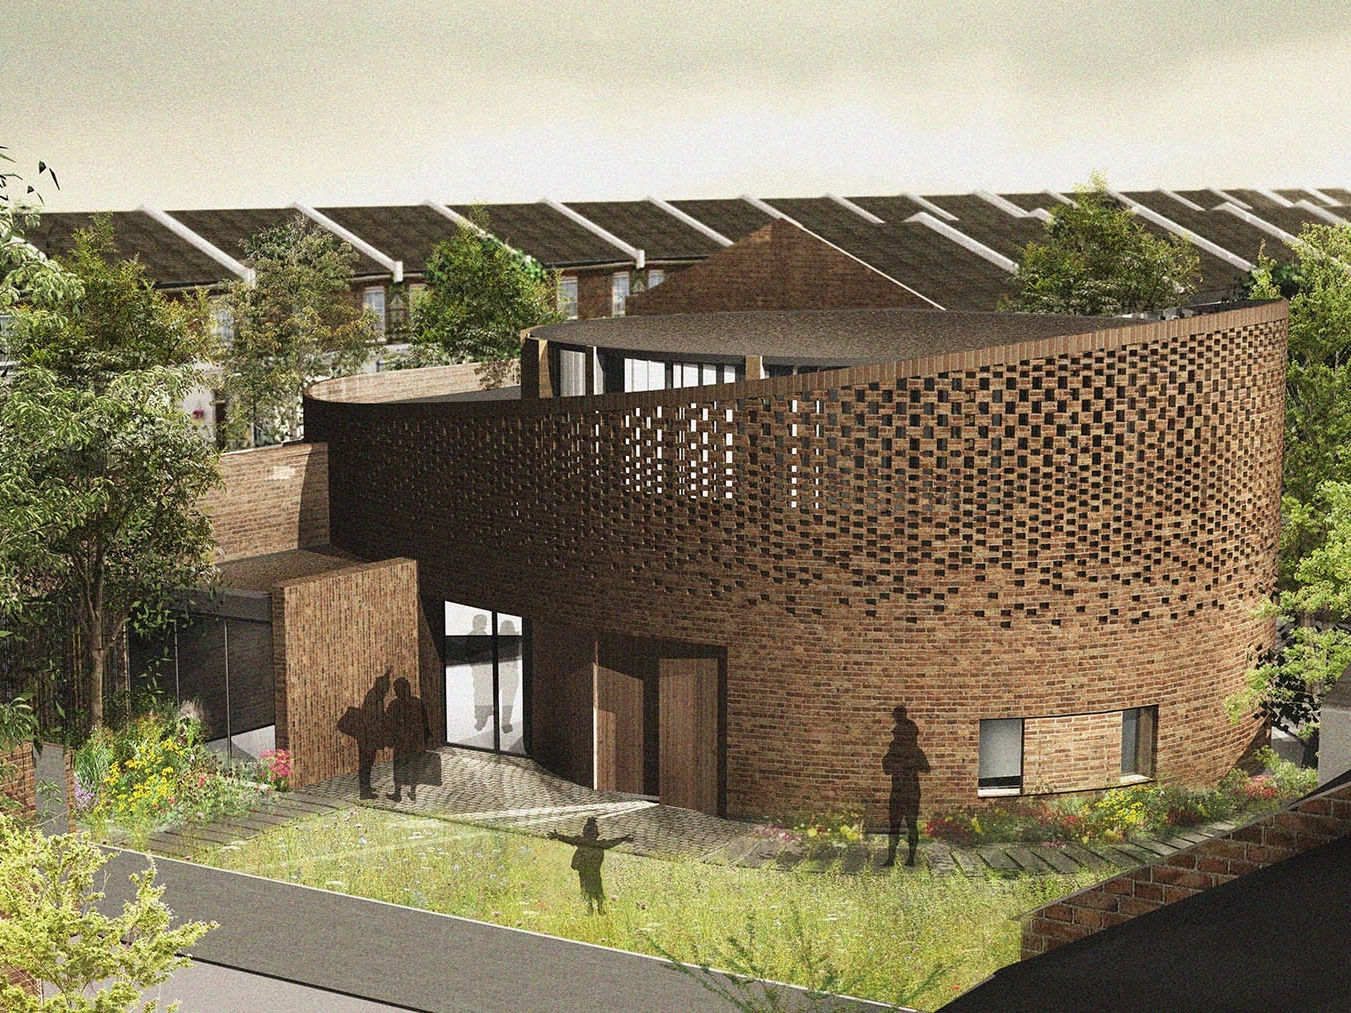 Architects 3D render of the rear of an ICF Building in Hammersmith